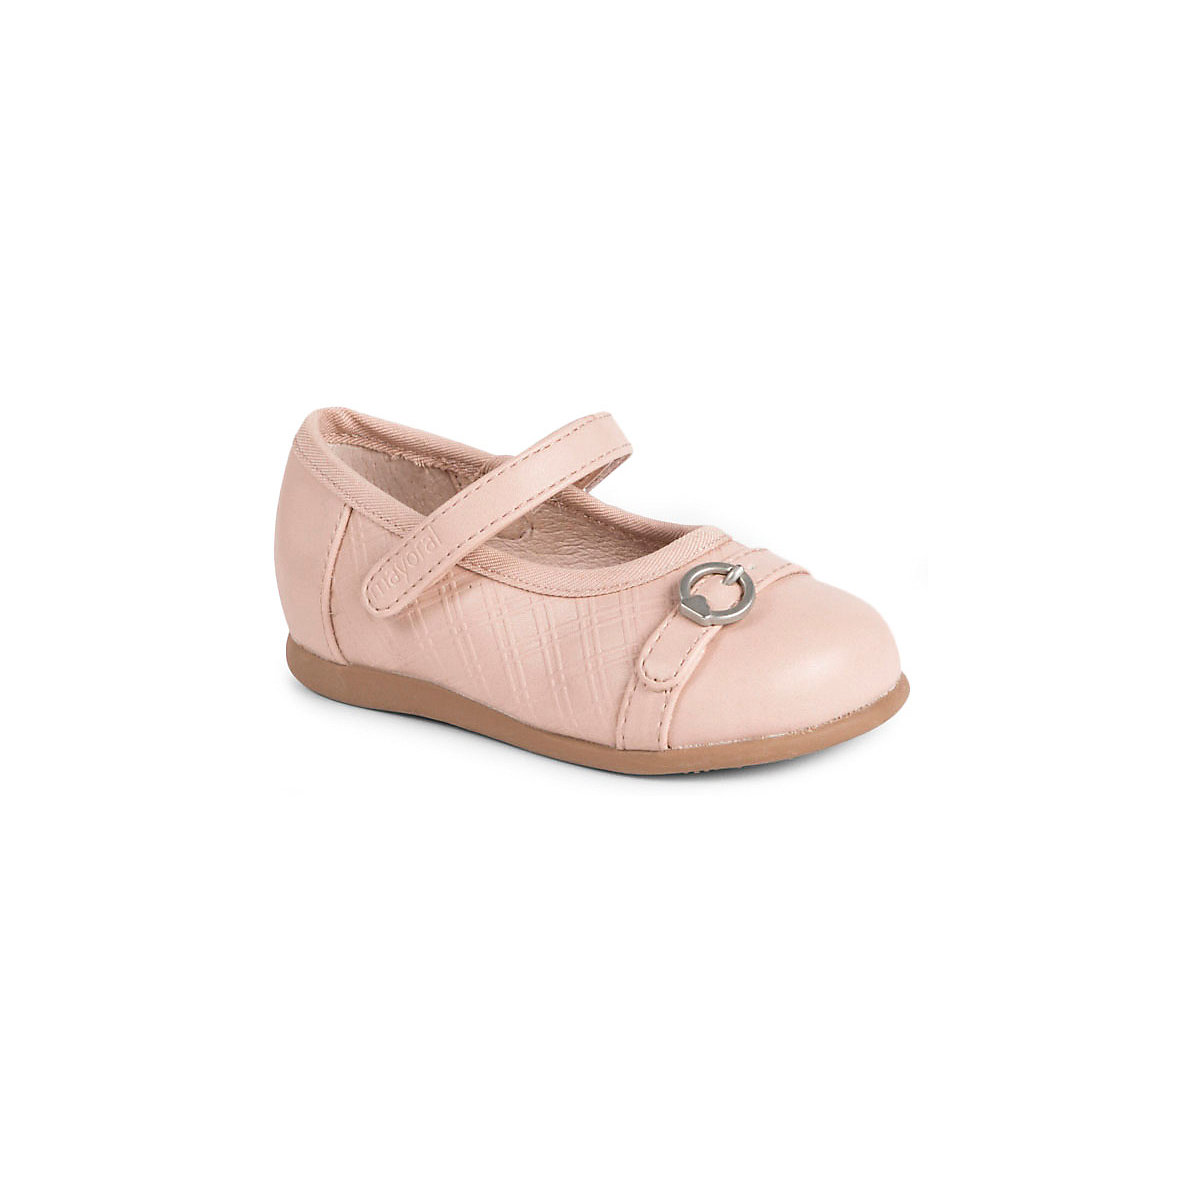 MAYORAL Children's Flats 10644569 pink summer ballet all-season elegant footwear Shoes for girls girl casual ballet leopard pattern non leather flat shoes women fashion boat shoes zapatos mujer tacon sapato flats large size 4 16